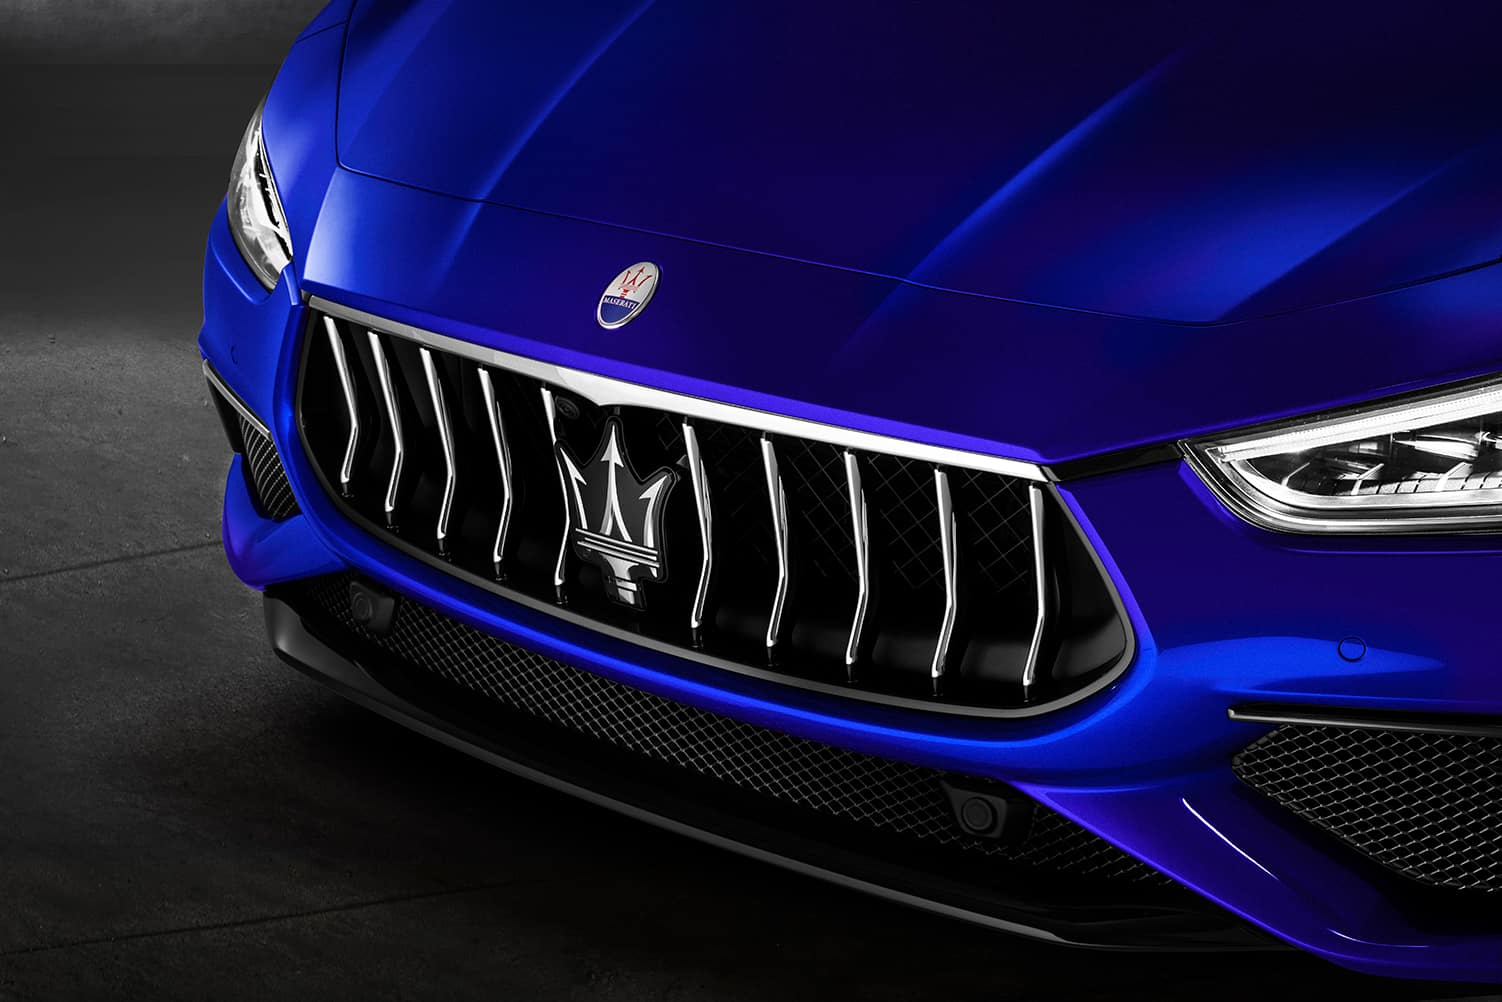 2020 Maserati Ghibli front grill | Bennett Maserati of Allentown is a Car Dealership near Wescosville PA in Allentown